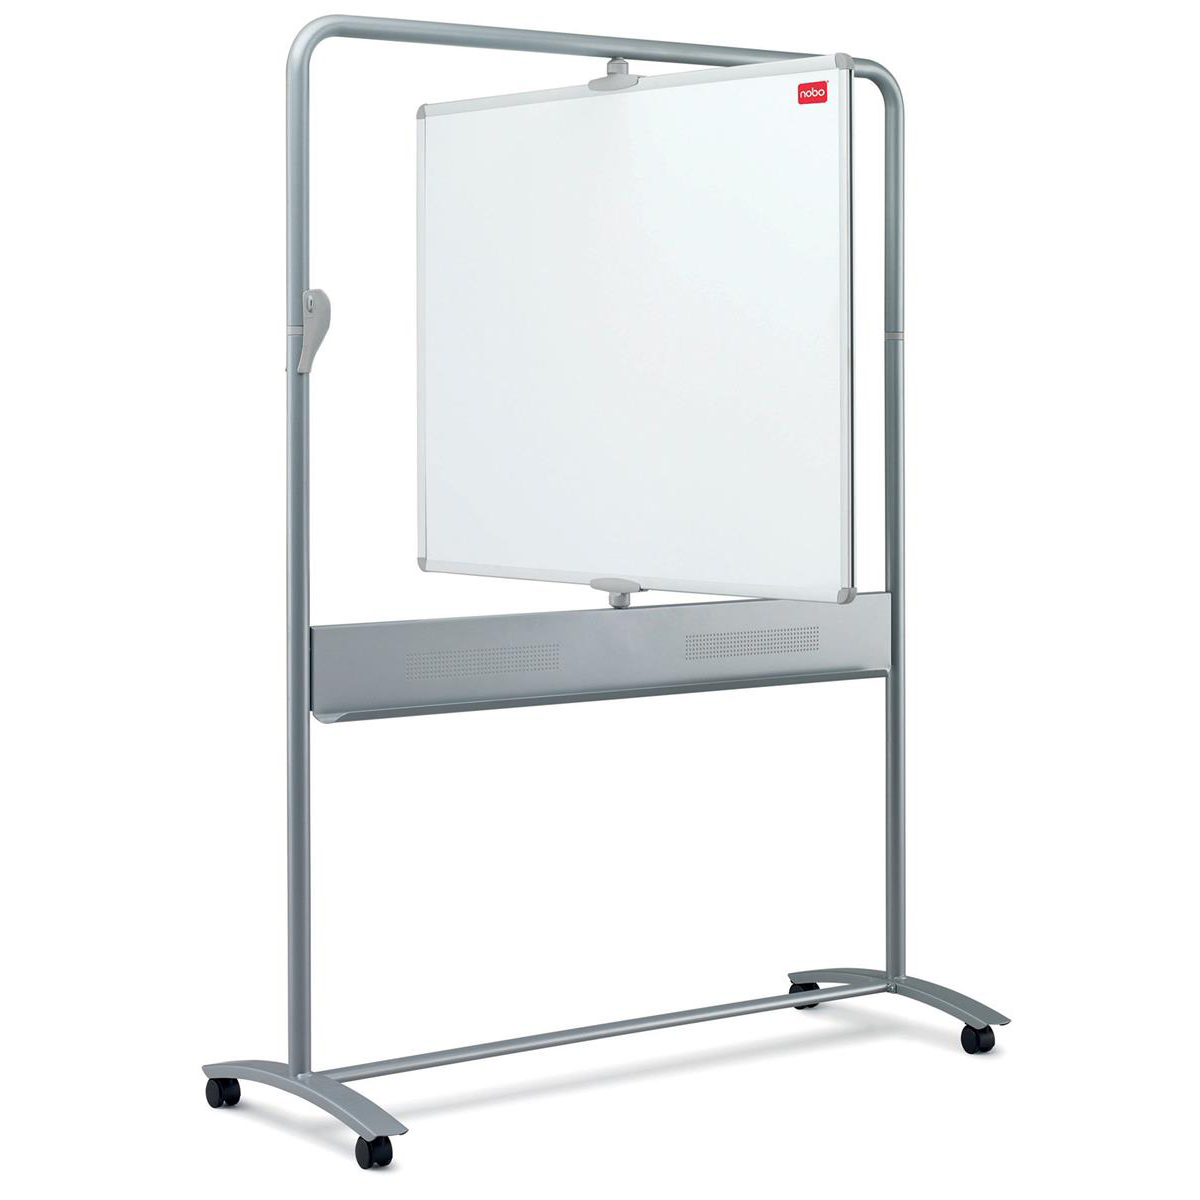 Nobo Mobile Whiteboard Easel Magnetic Steel Vertical Pivot W1200xH900mm Board Ref 1901030